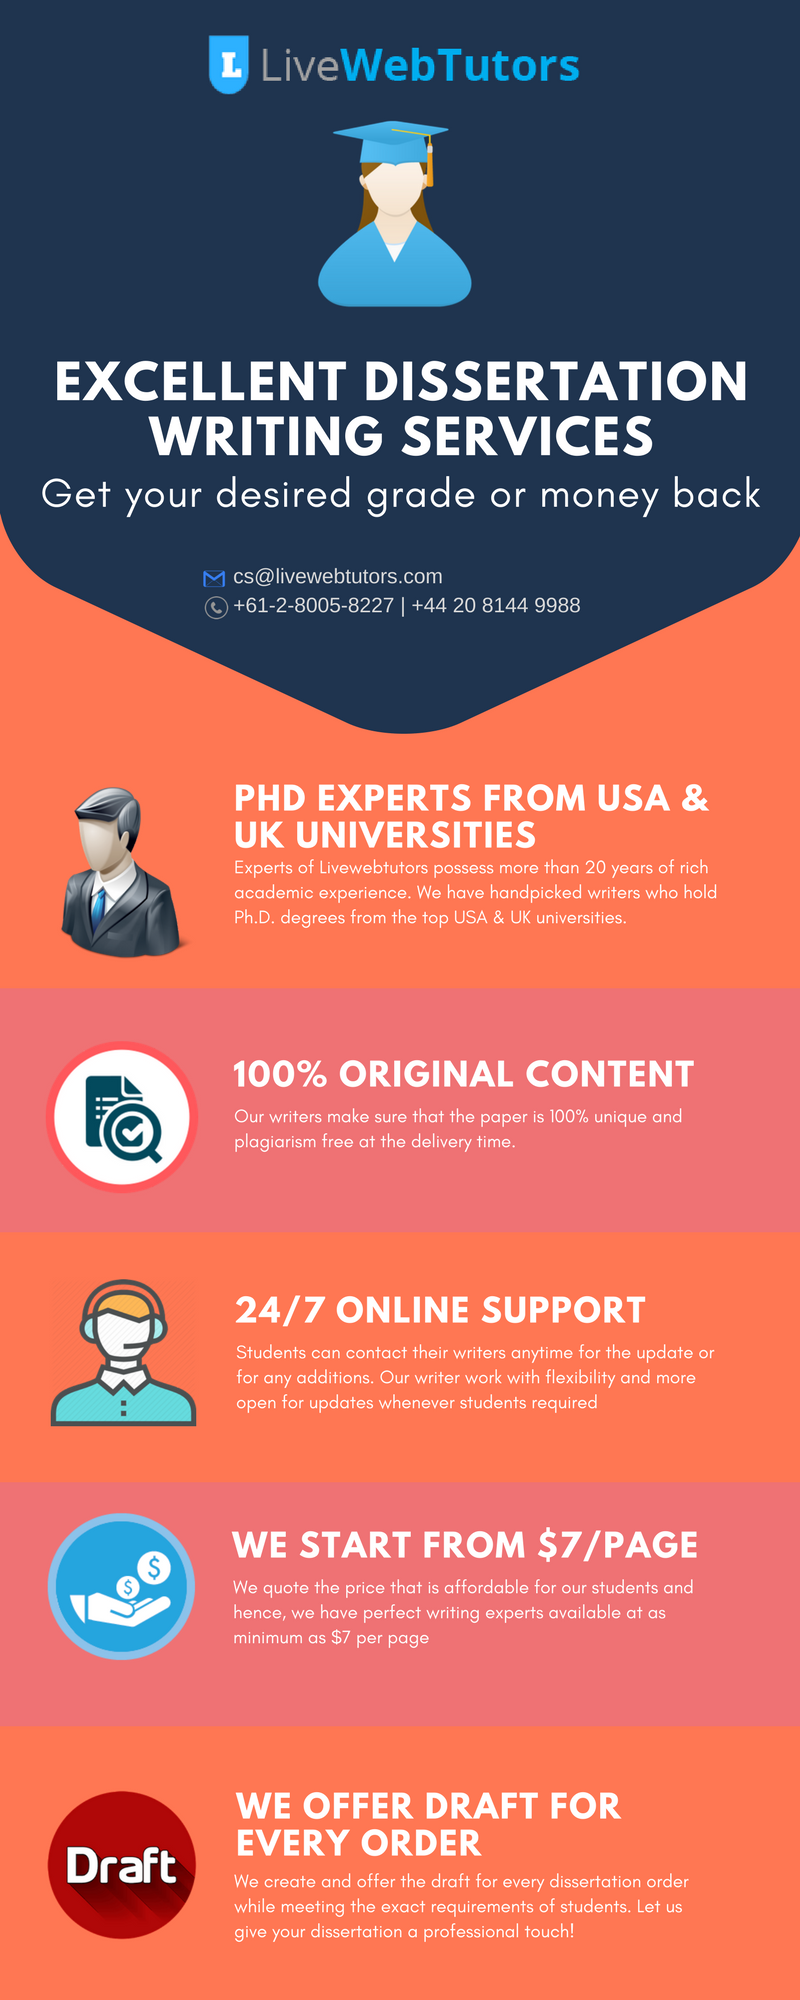 advertising dissertations How to write an advertising dissertation through free advertising dissertations topics, advertising dissertation proposal example.